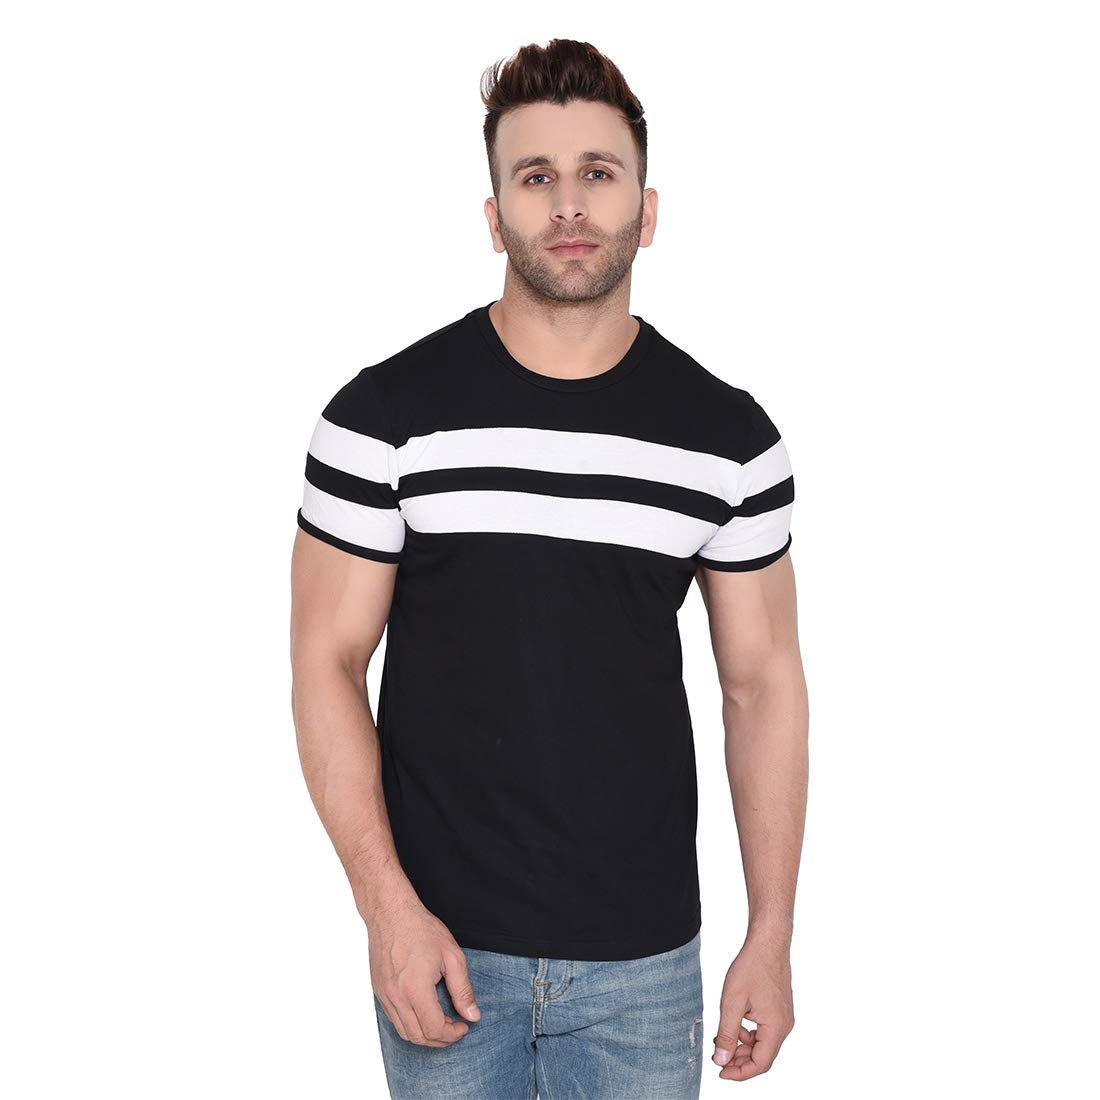 GRABIN Awesome black colour T-shirt for Men's